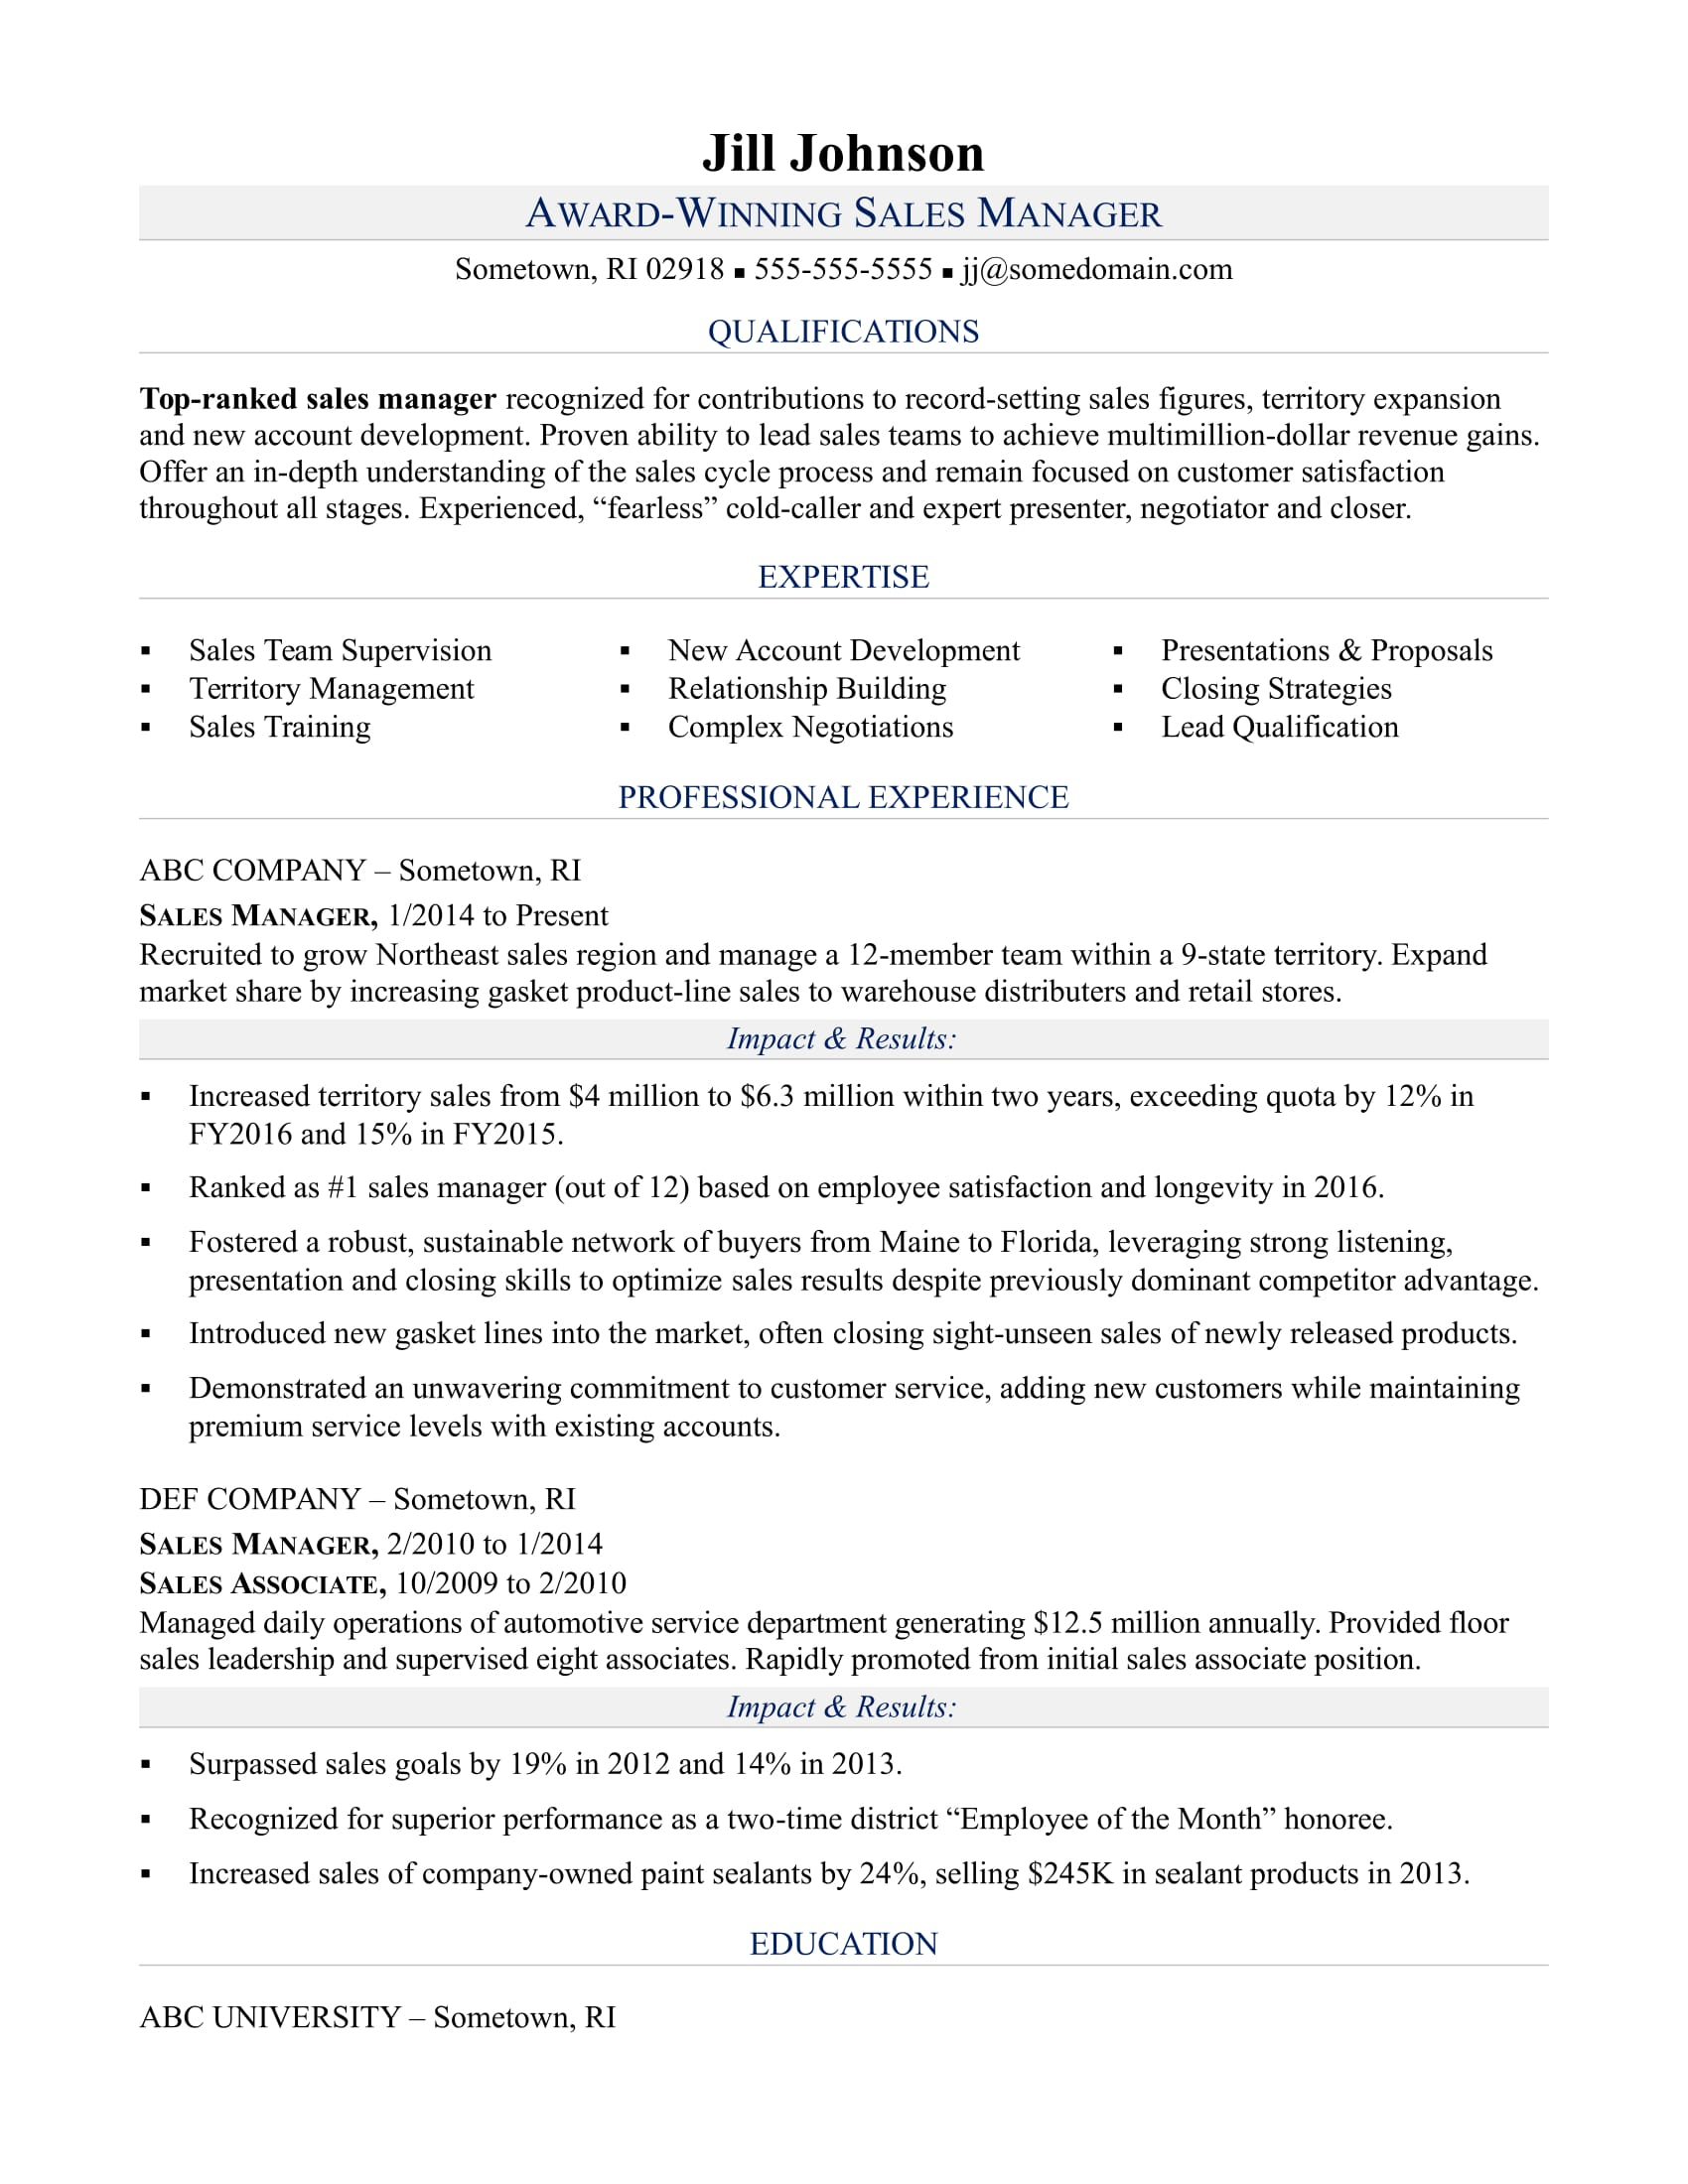 sample resume for a sales manager - Zonal Manager Resume Sample